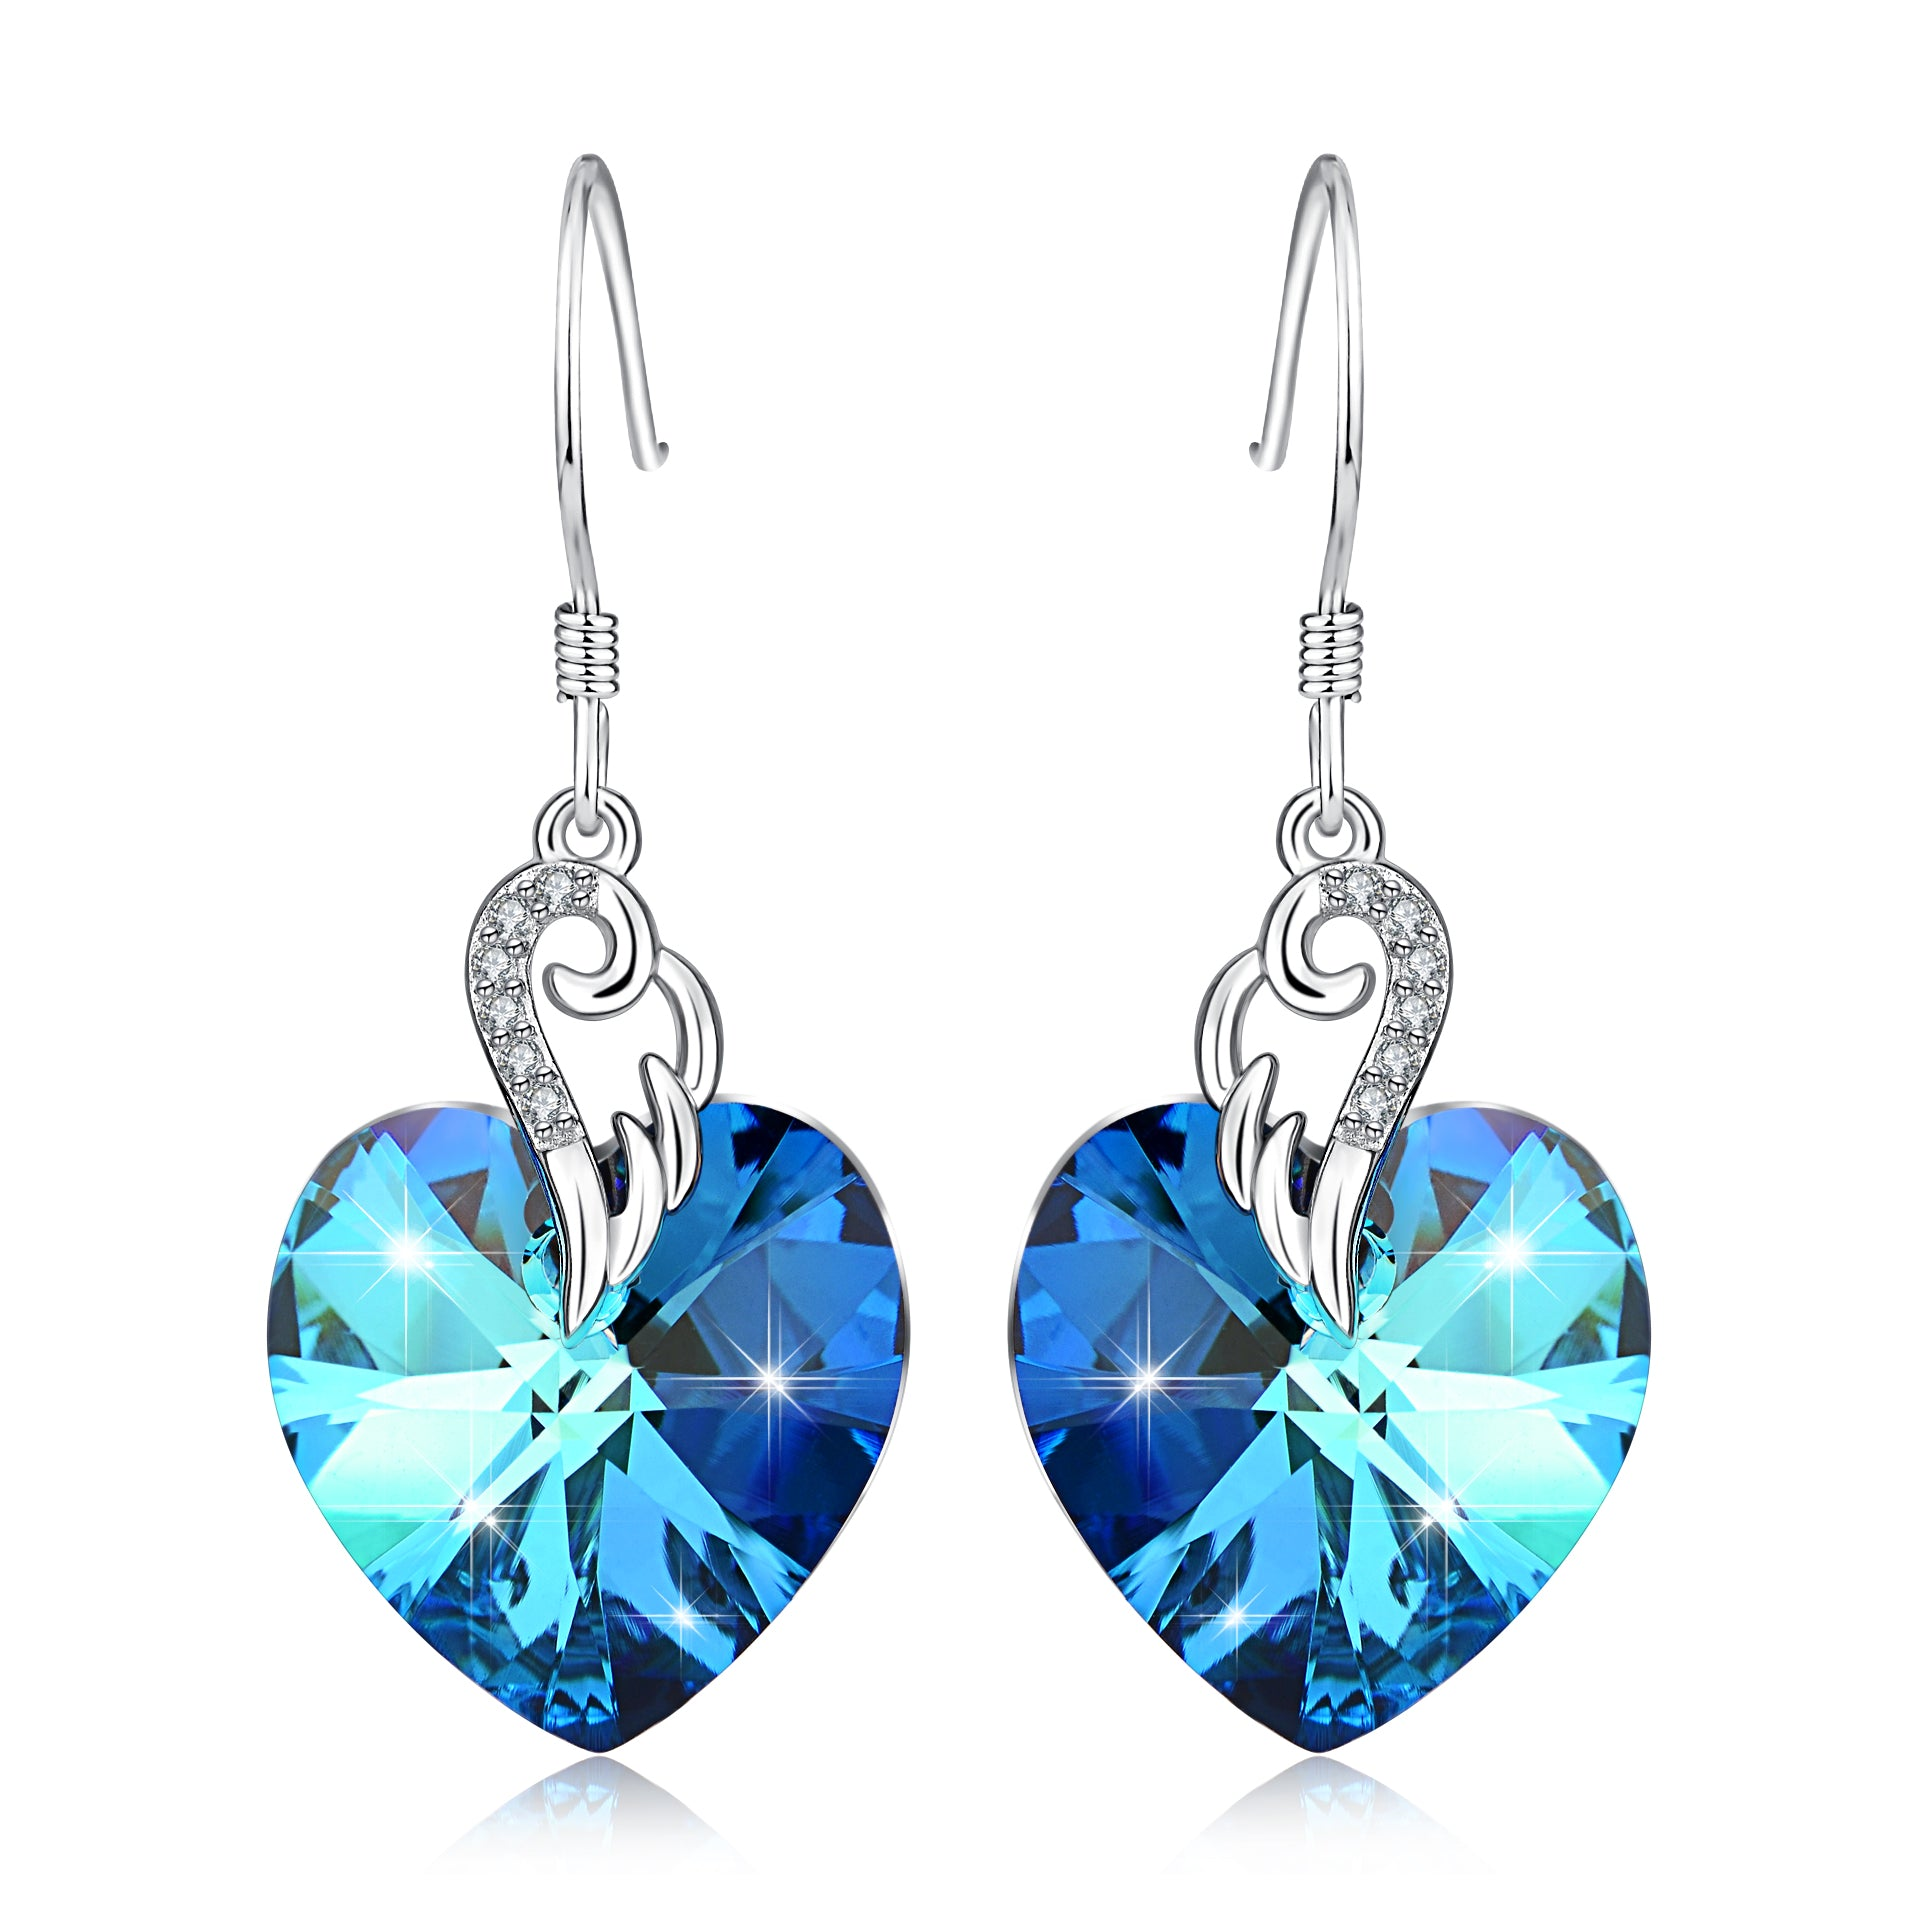 Heart Pendant Earring For Women Girls Lovers Cute Simple 925 Silver